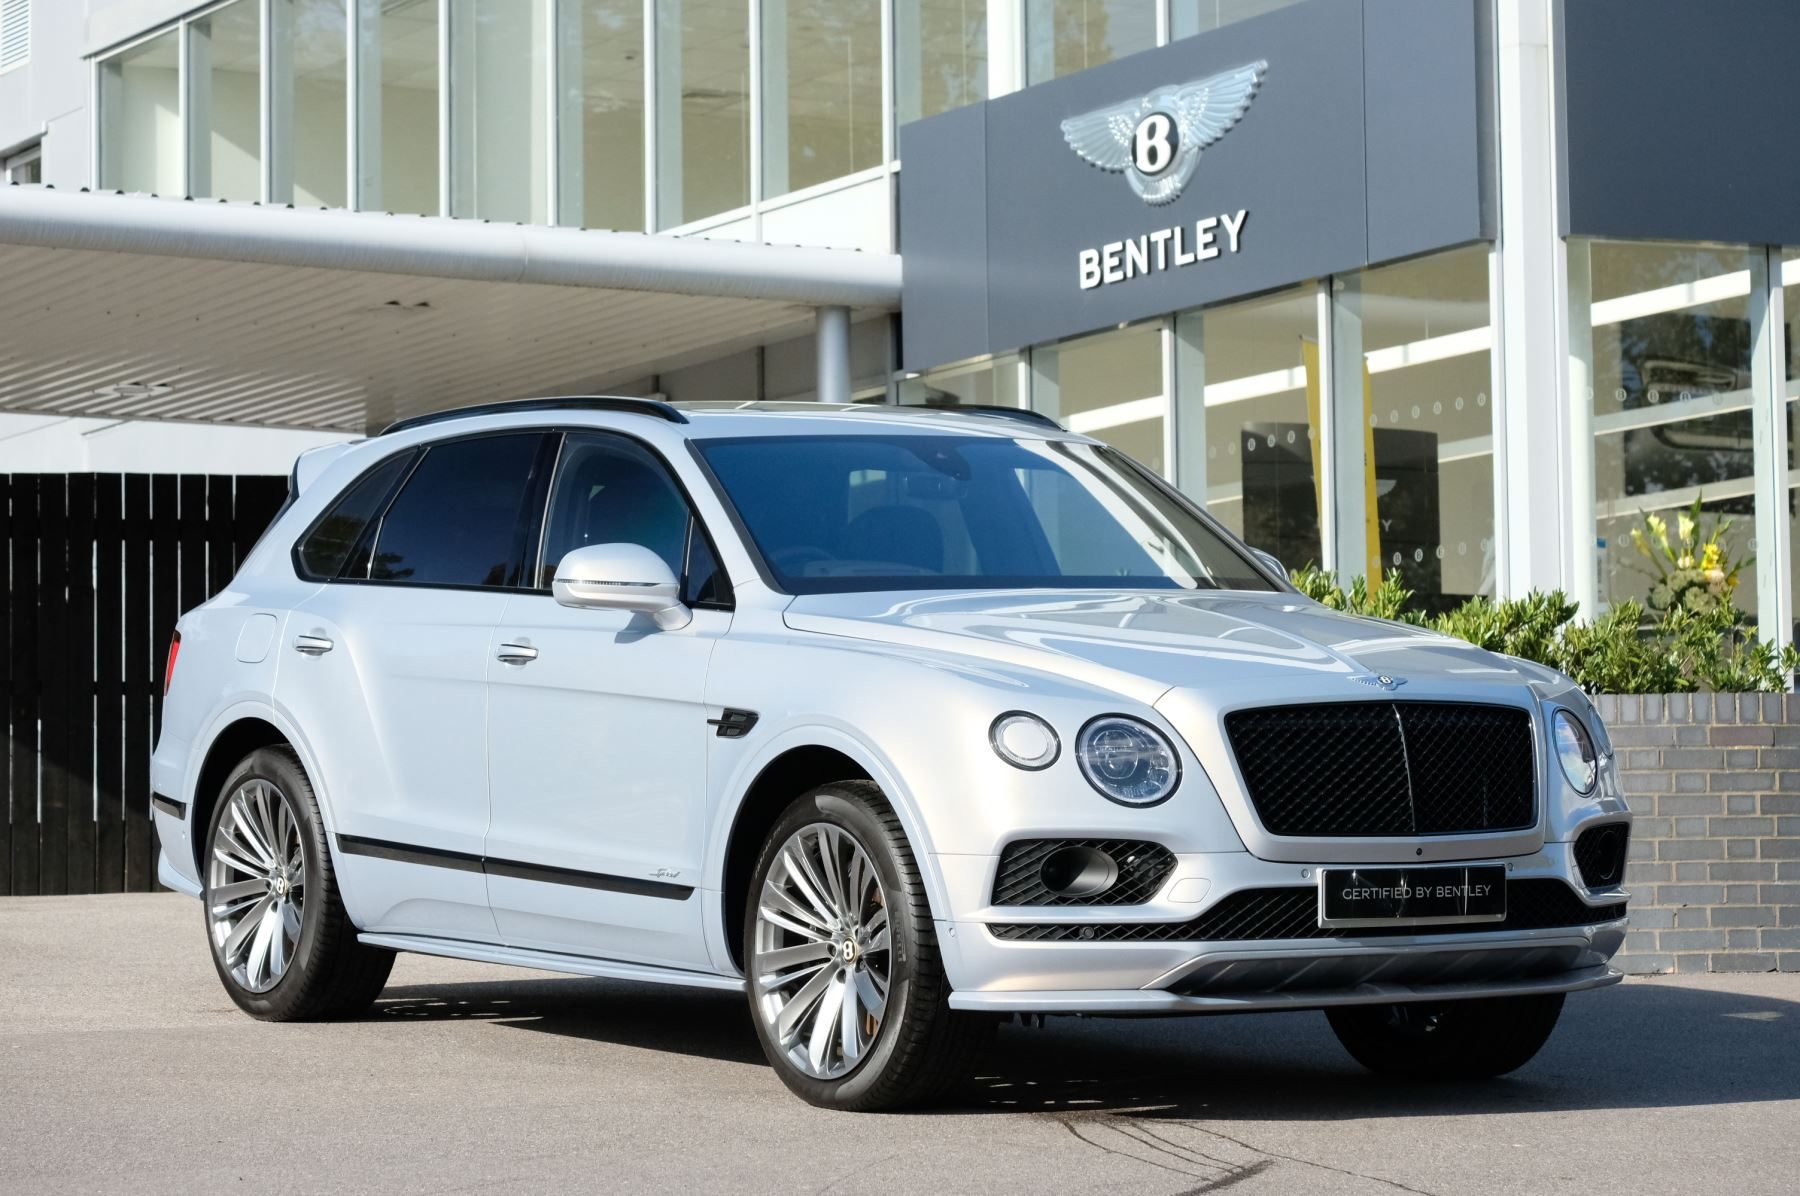 Bentley Bentayga 0.0 Speed - City and Touring